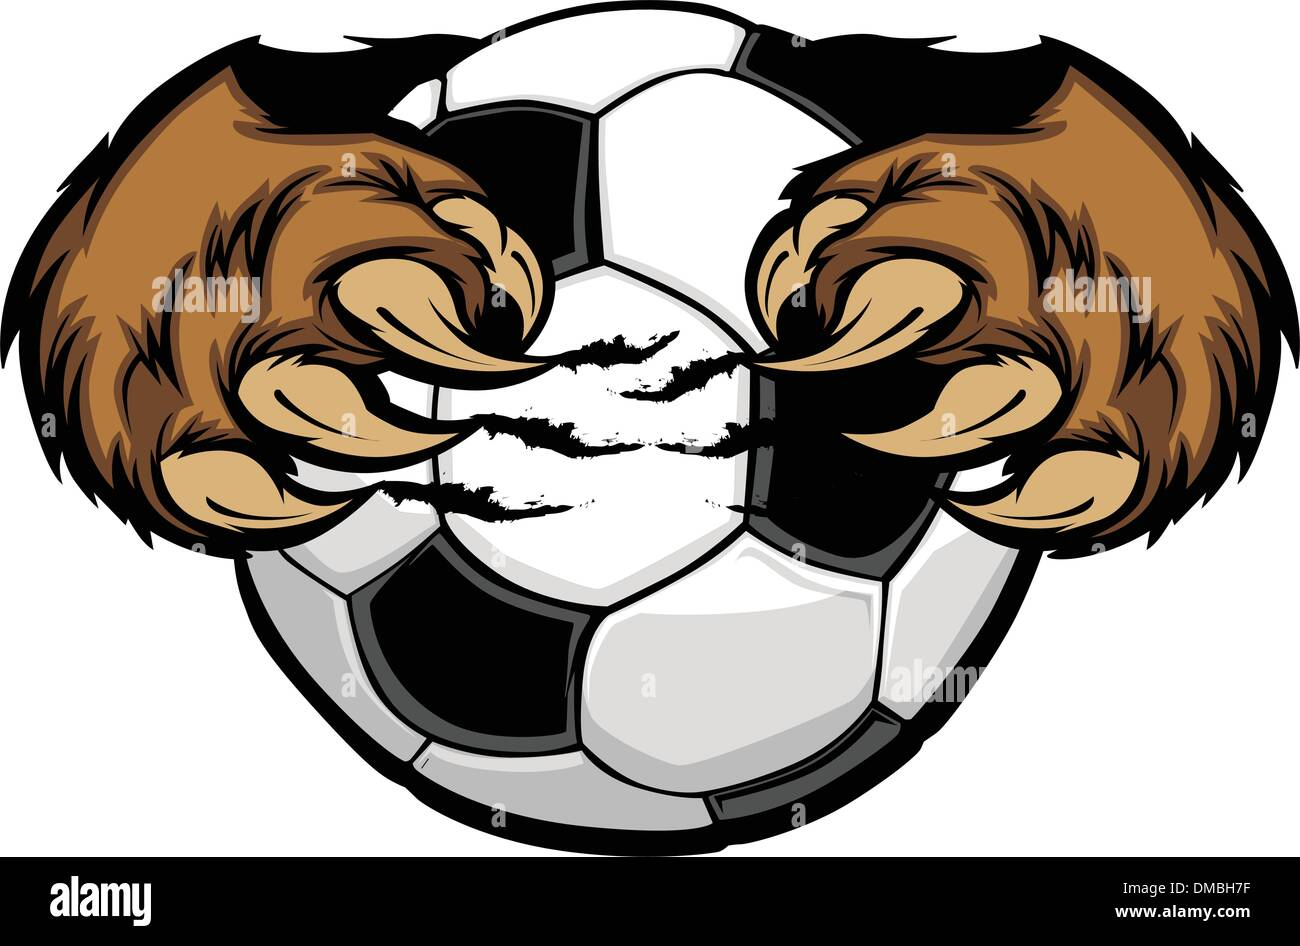 Soccer Ball With Bear Claws Vector Image - Stock Vector